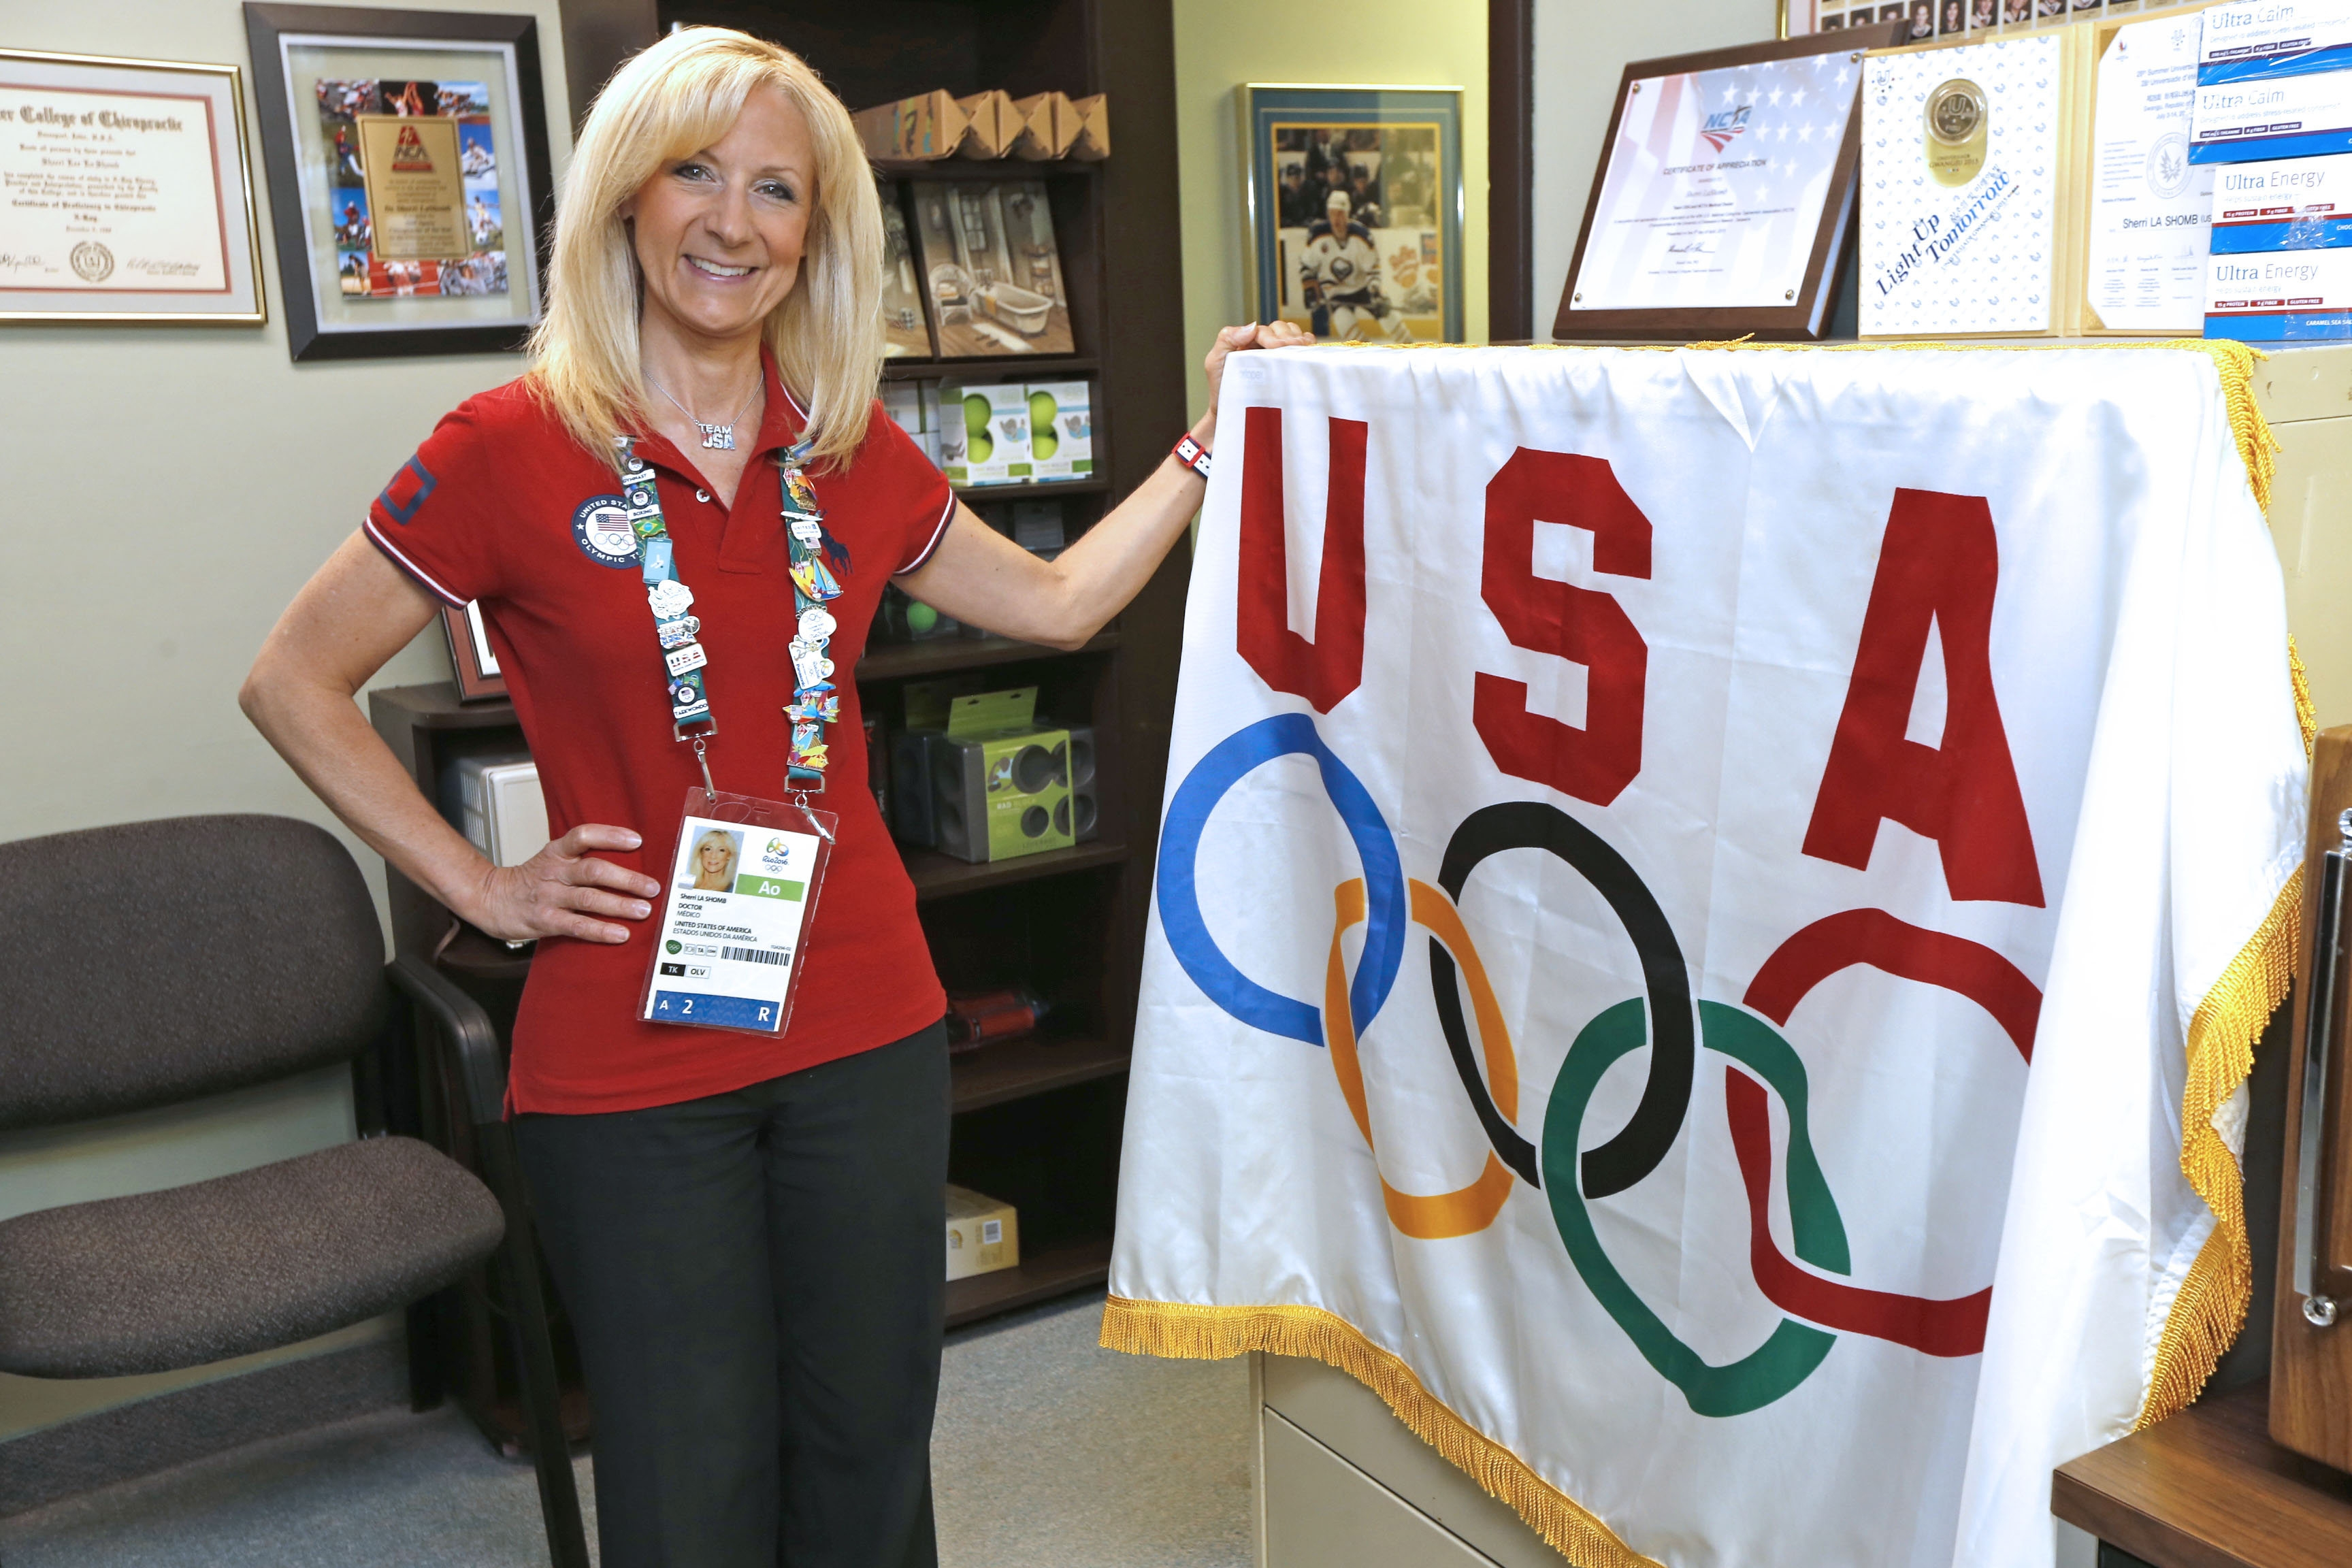 Dr. Sherri LaShomb just returned from the Olympics in Rio, where she was chiropractor and athletic trainer to USA Taekwondo team.